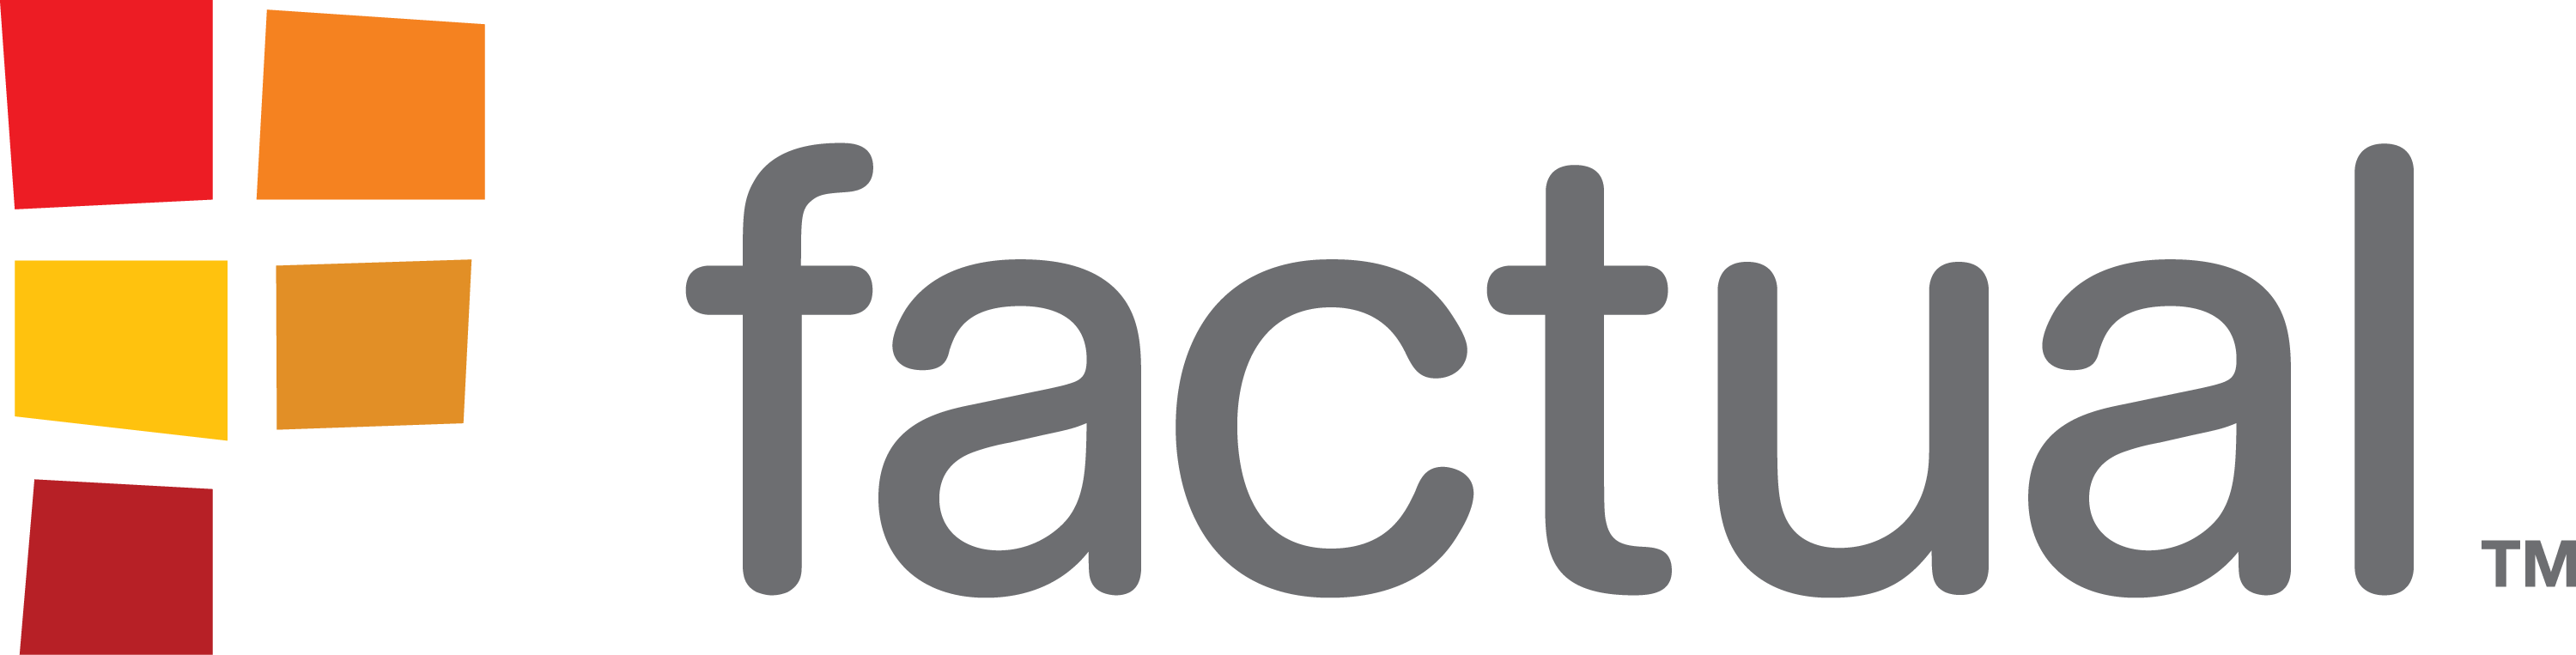 Factual Announces Deals With Apple And Facebook For Improved Location Data http://t.co/mwTox9cYyG #geo #timsabre